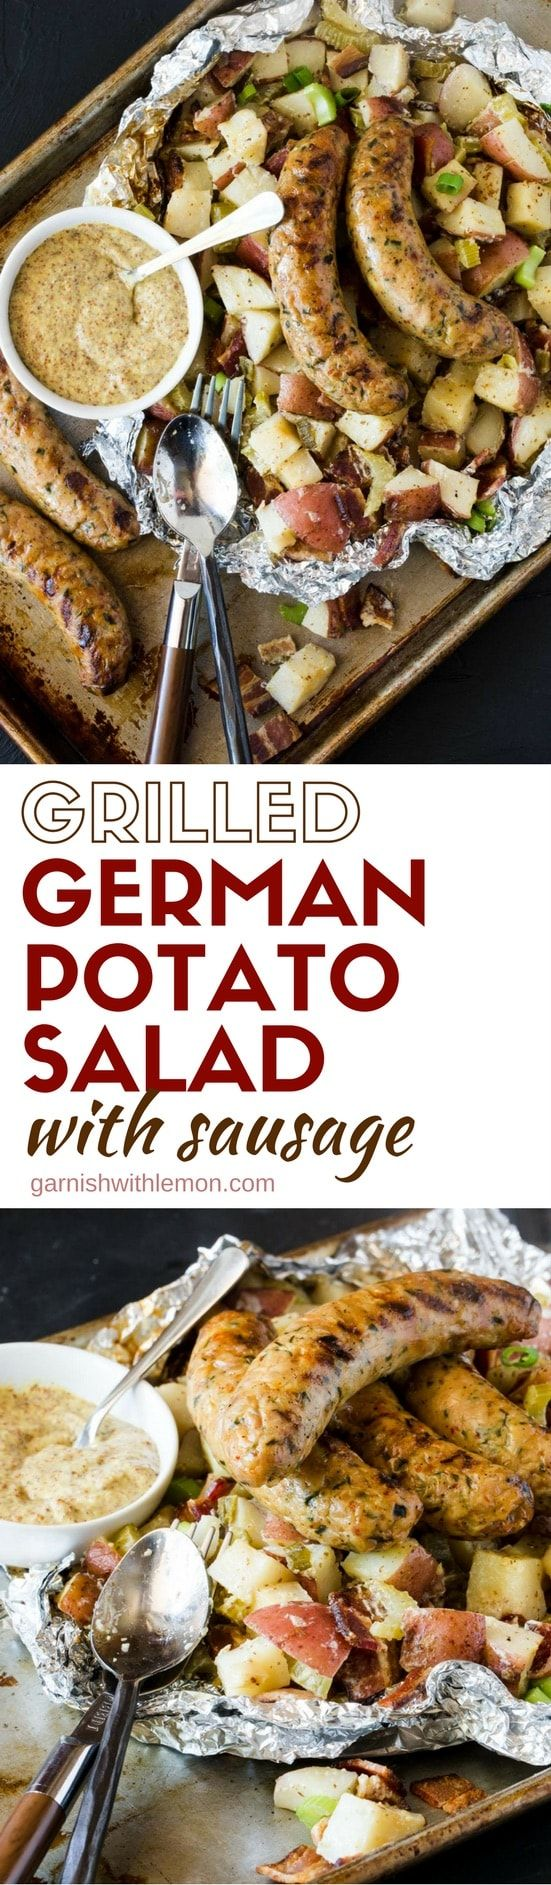 Planning a BBQ? Add this easy Grilled German Potato Salad with Sausage to the menu. Cooked in a foil packet for easy clean up!